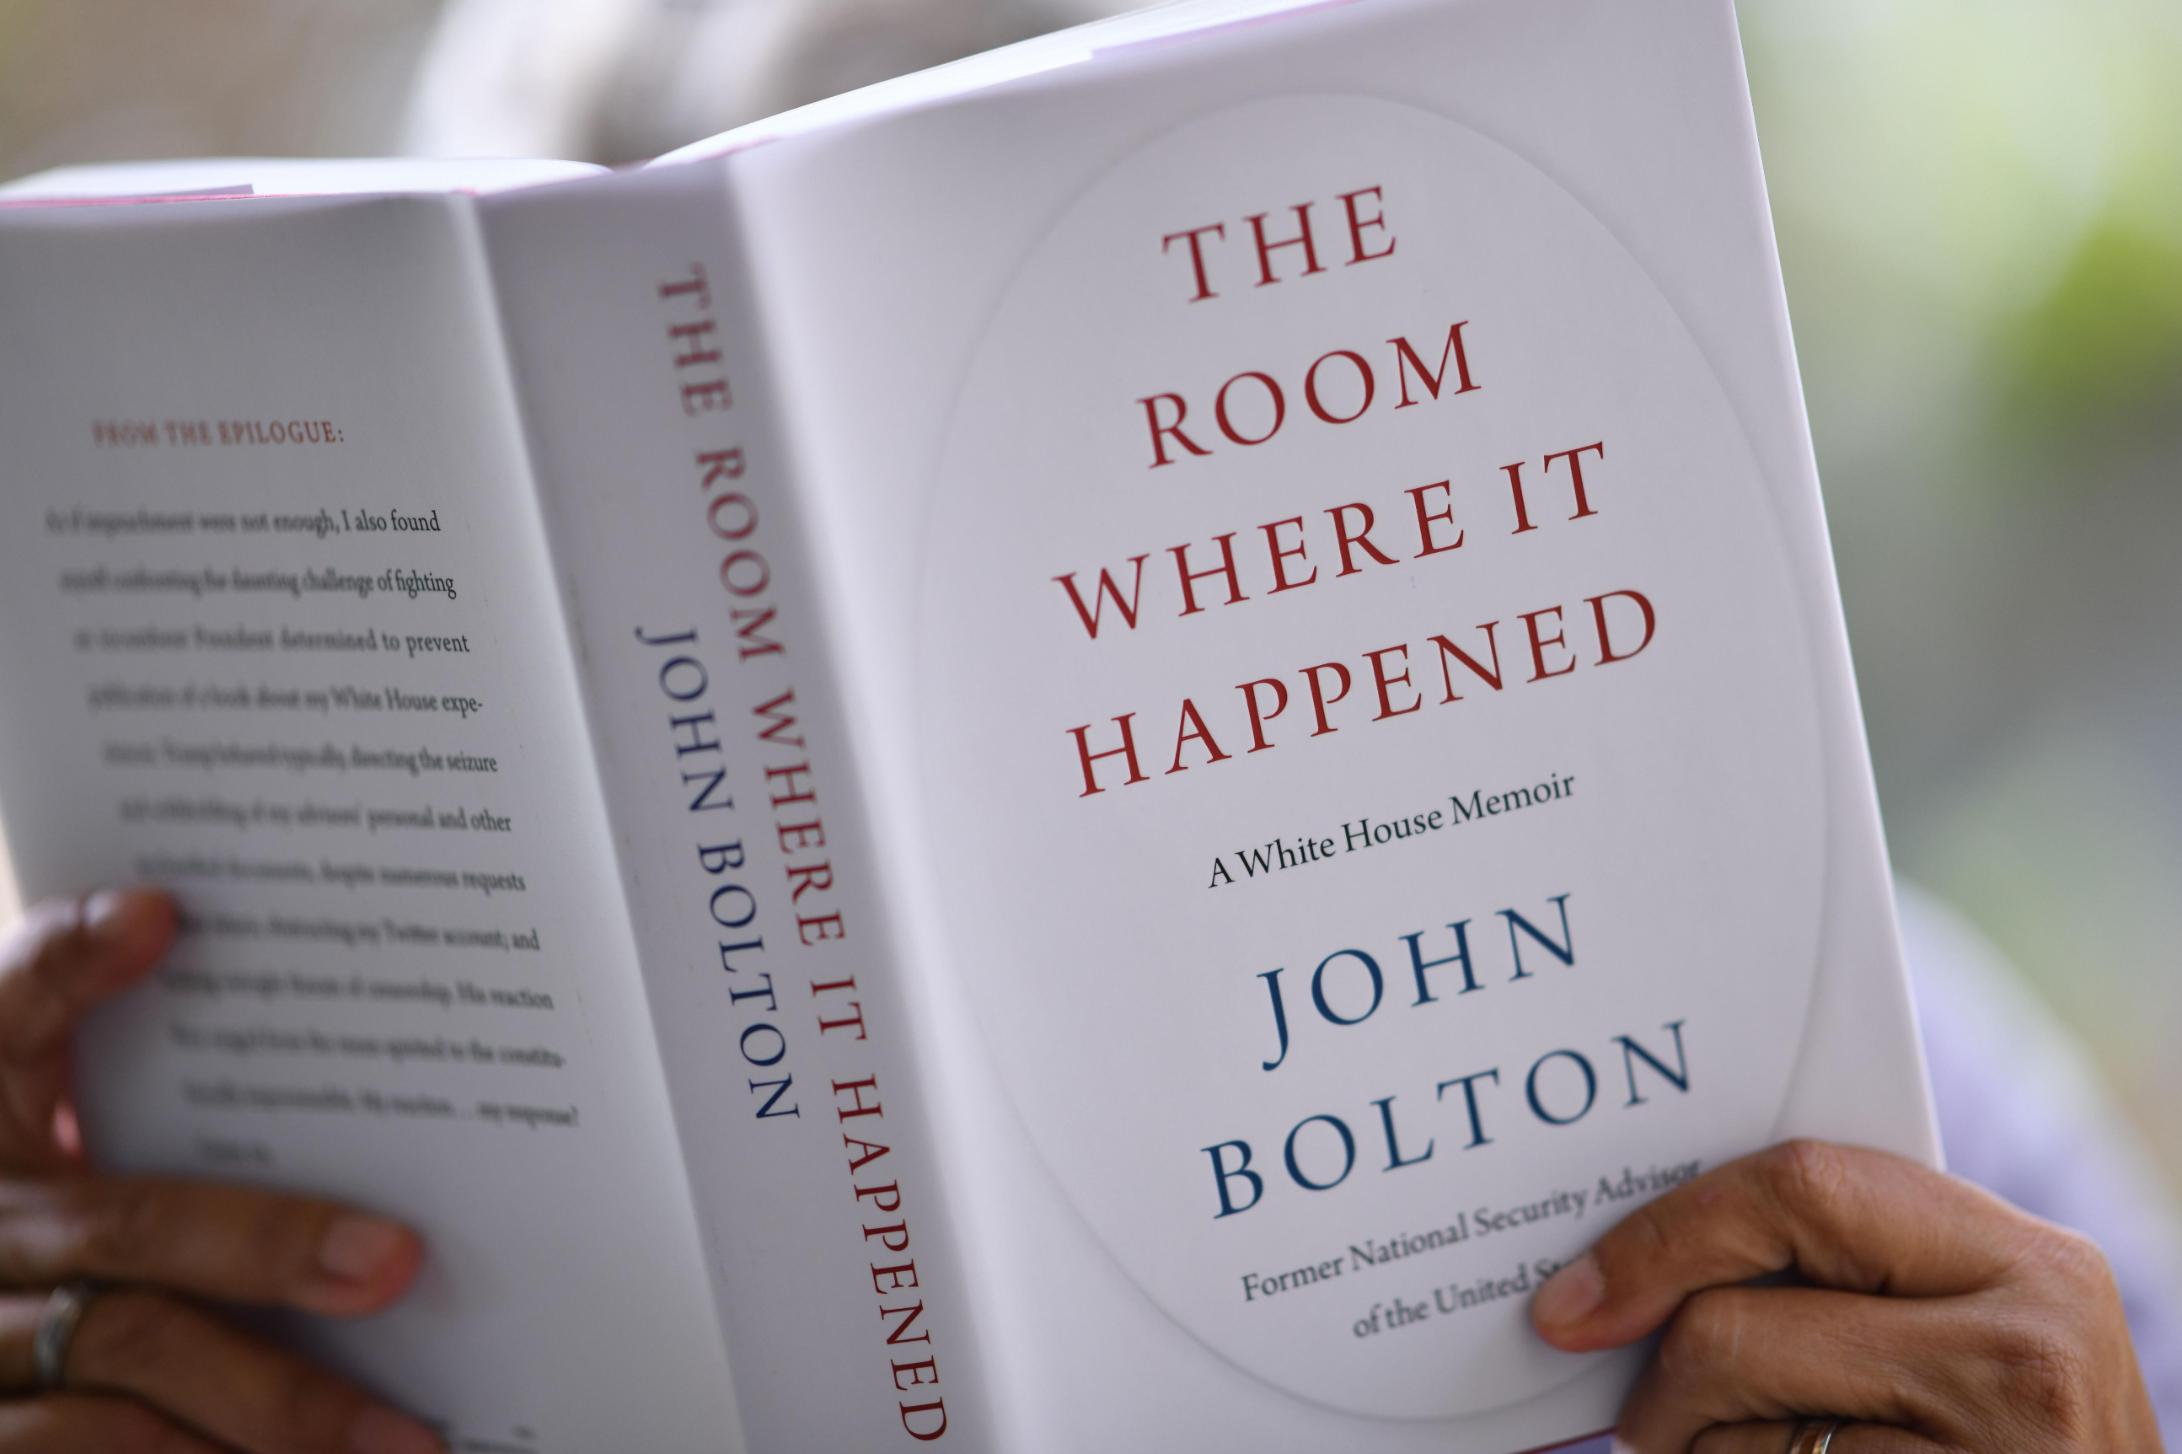 John Bolton's memoir has sold a staggering 780,000 copies in its first week on sale